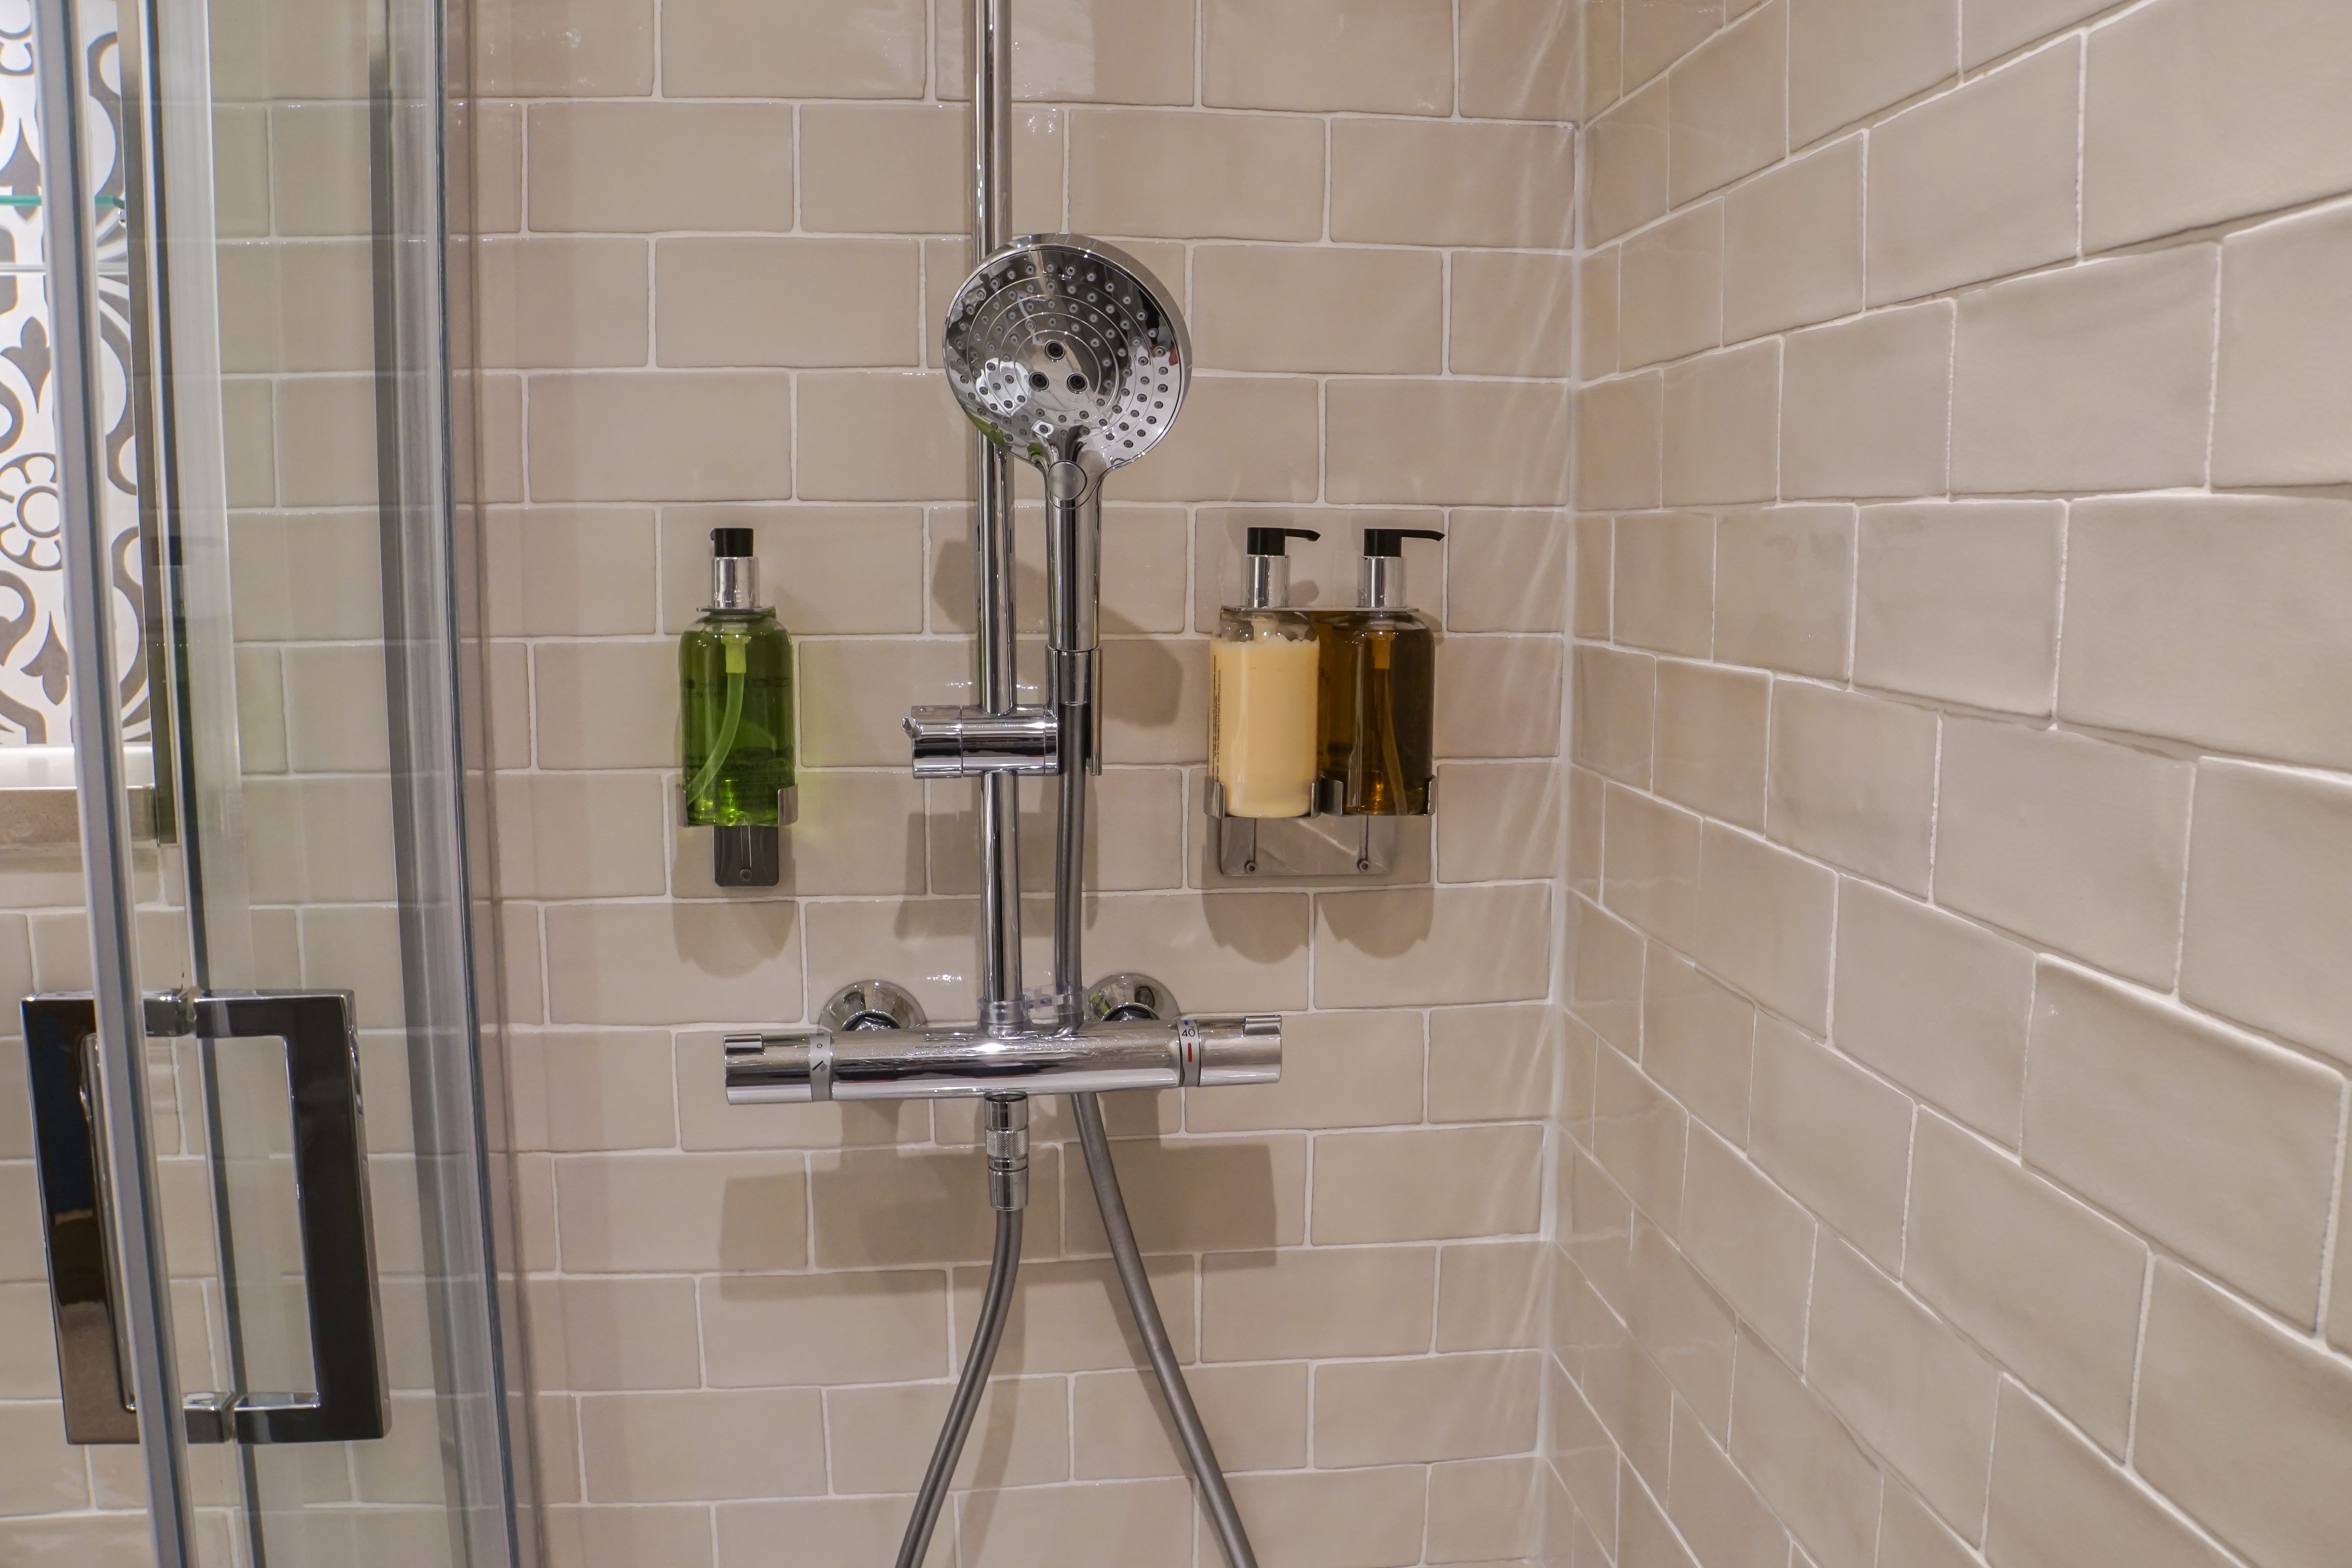 How to Cover Ugly Shower Tile | Home Guides | SF Gate Tile Wall Bathroom Shower Design Ideas Html on bathroom shower wall tile installation, bathroom floor tile design ideas, bathroom vanity tile design ideas,